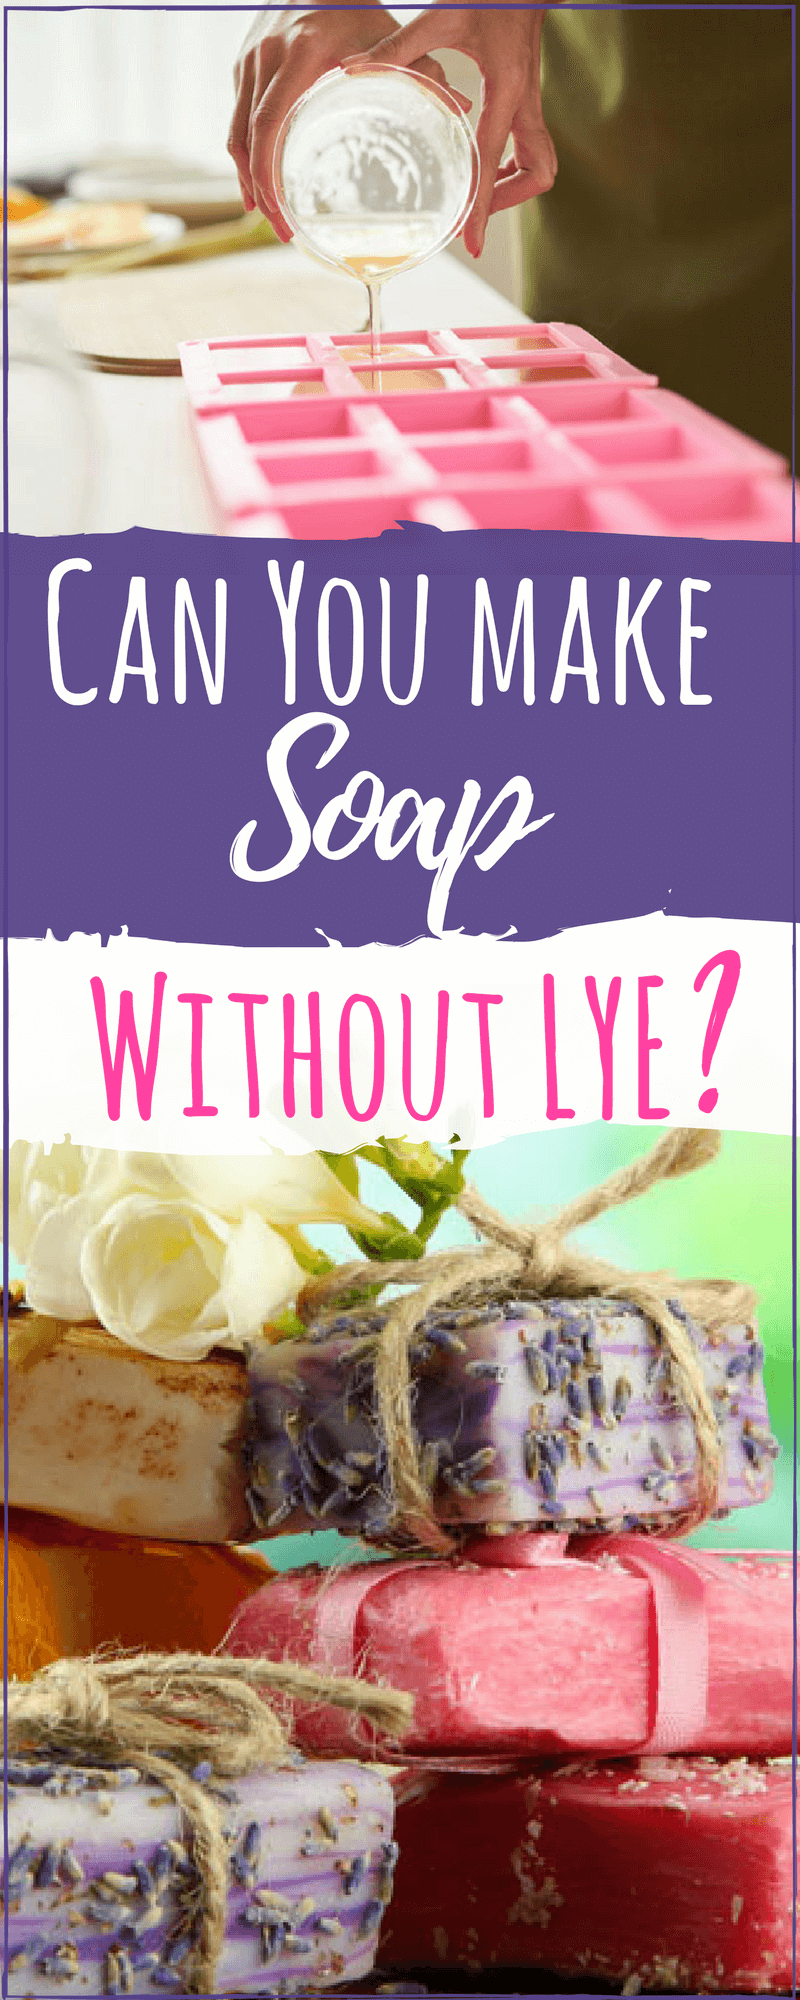 Can You Make Soap Without Lye? Homemade soap recipes